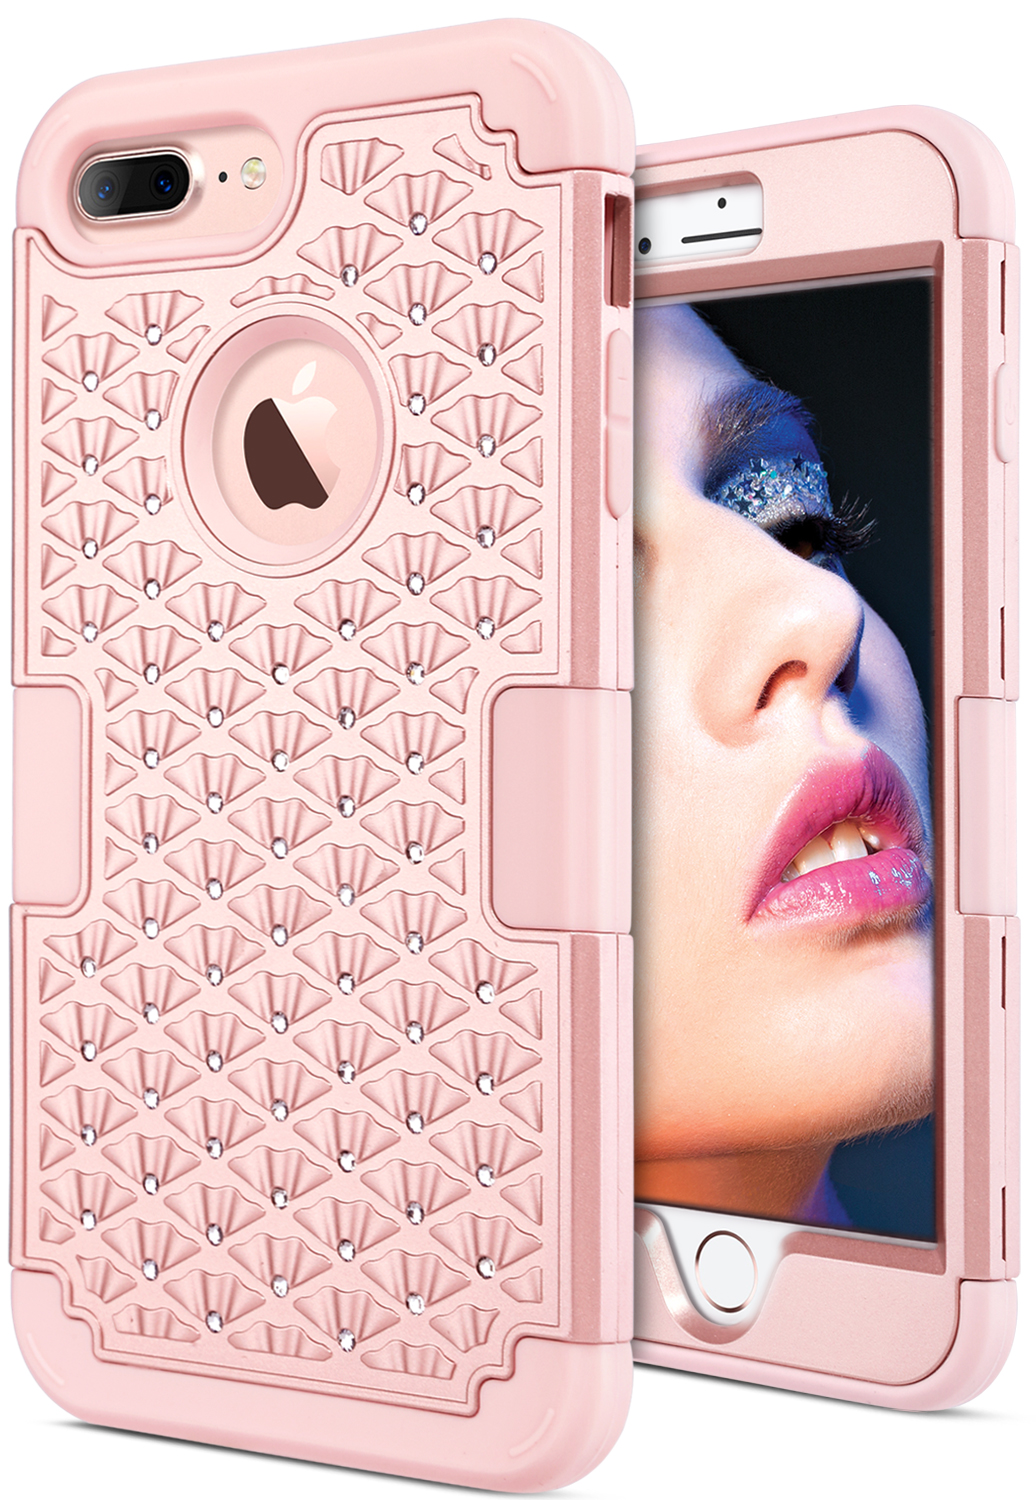 ULAK Hybrid Shock,Absorption Case for iPhone 7 Plus, Bling, Rose Gold